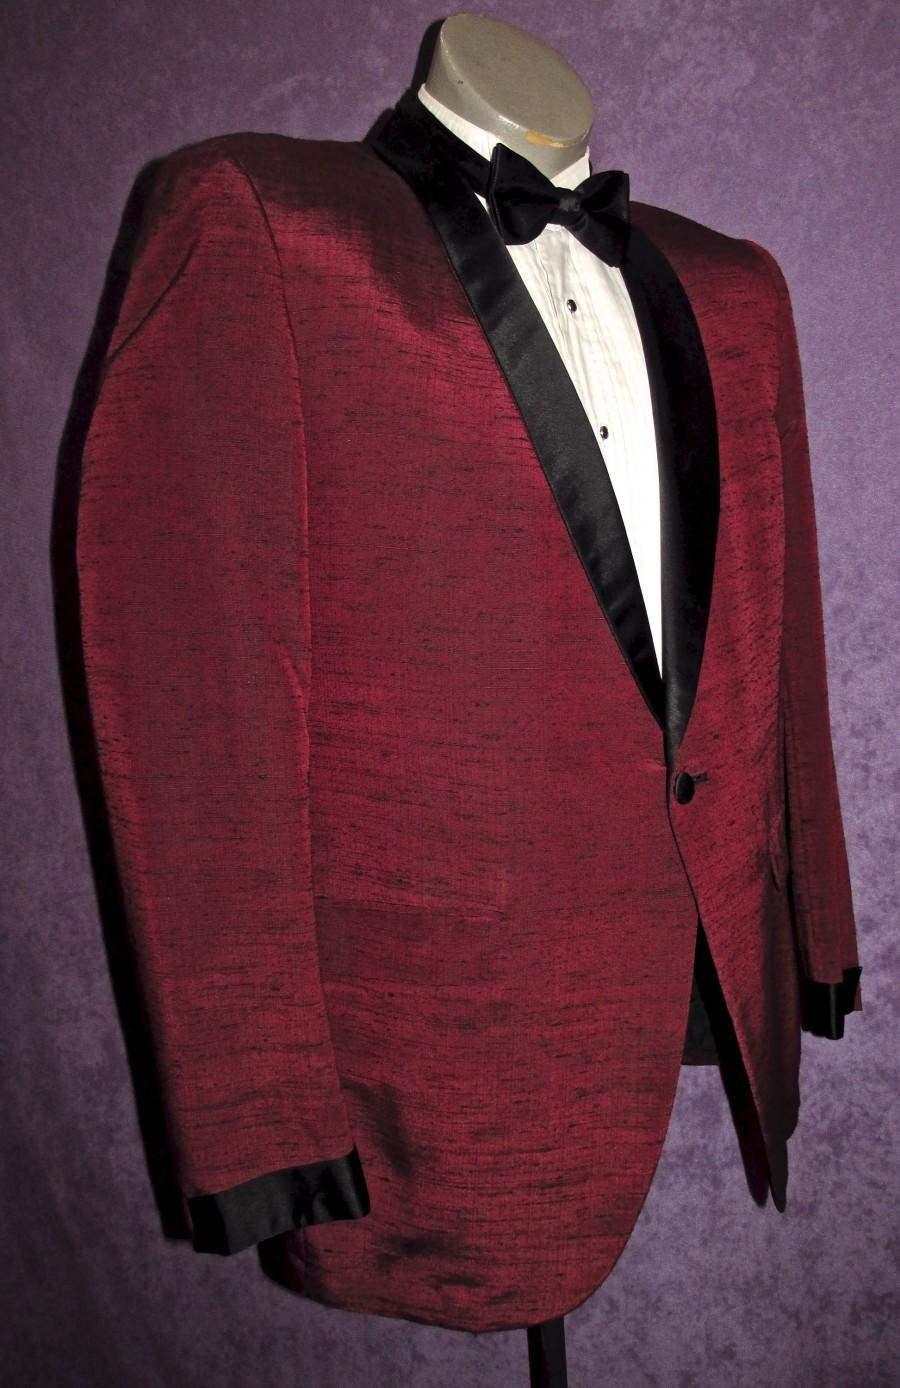 Свадьба - 50s Tux Jacket 40R -41R Maroon Dark Red w/Black Shawl Collar Vintage Tuxedo Early 60s 80s Early Motown Rat Pack Dinner West Side Story